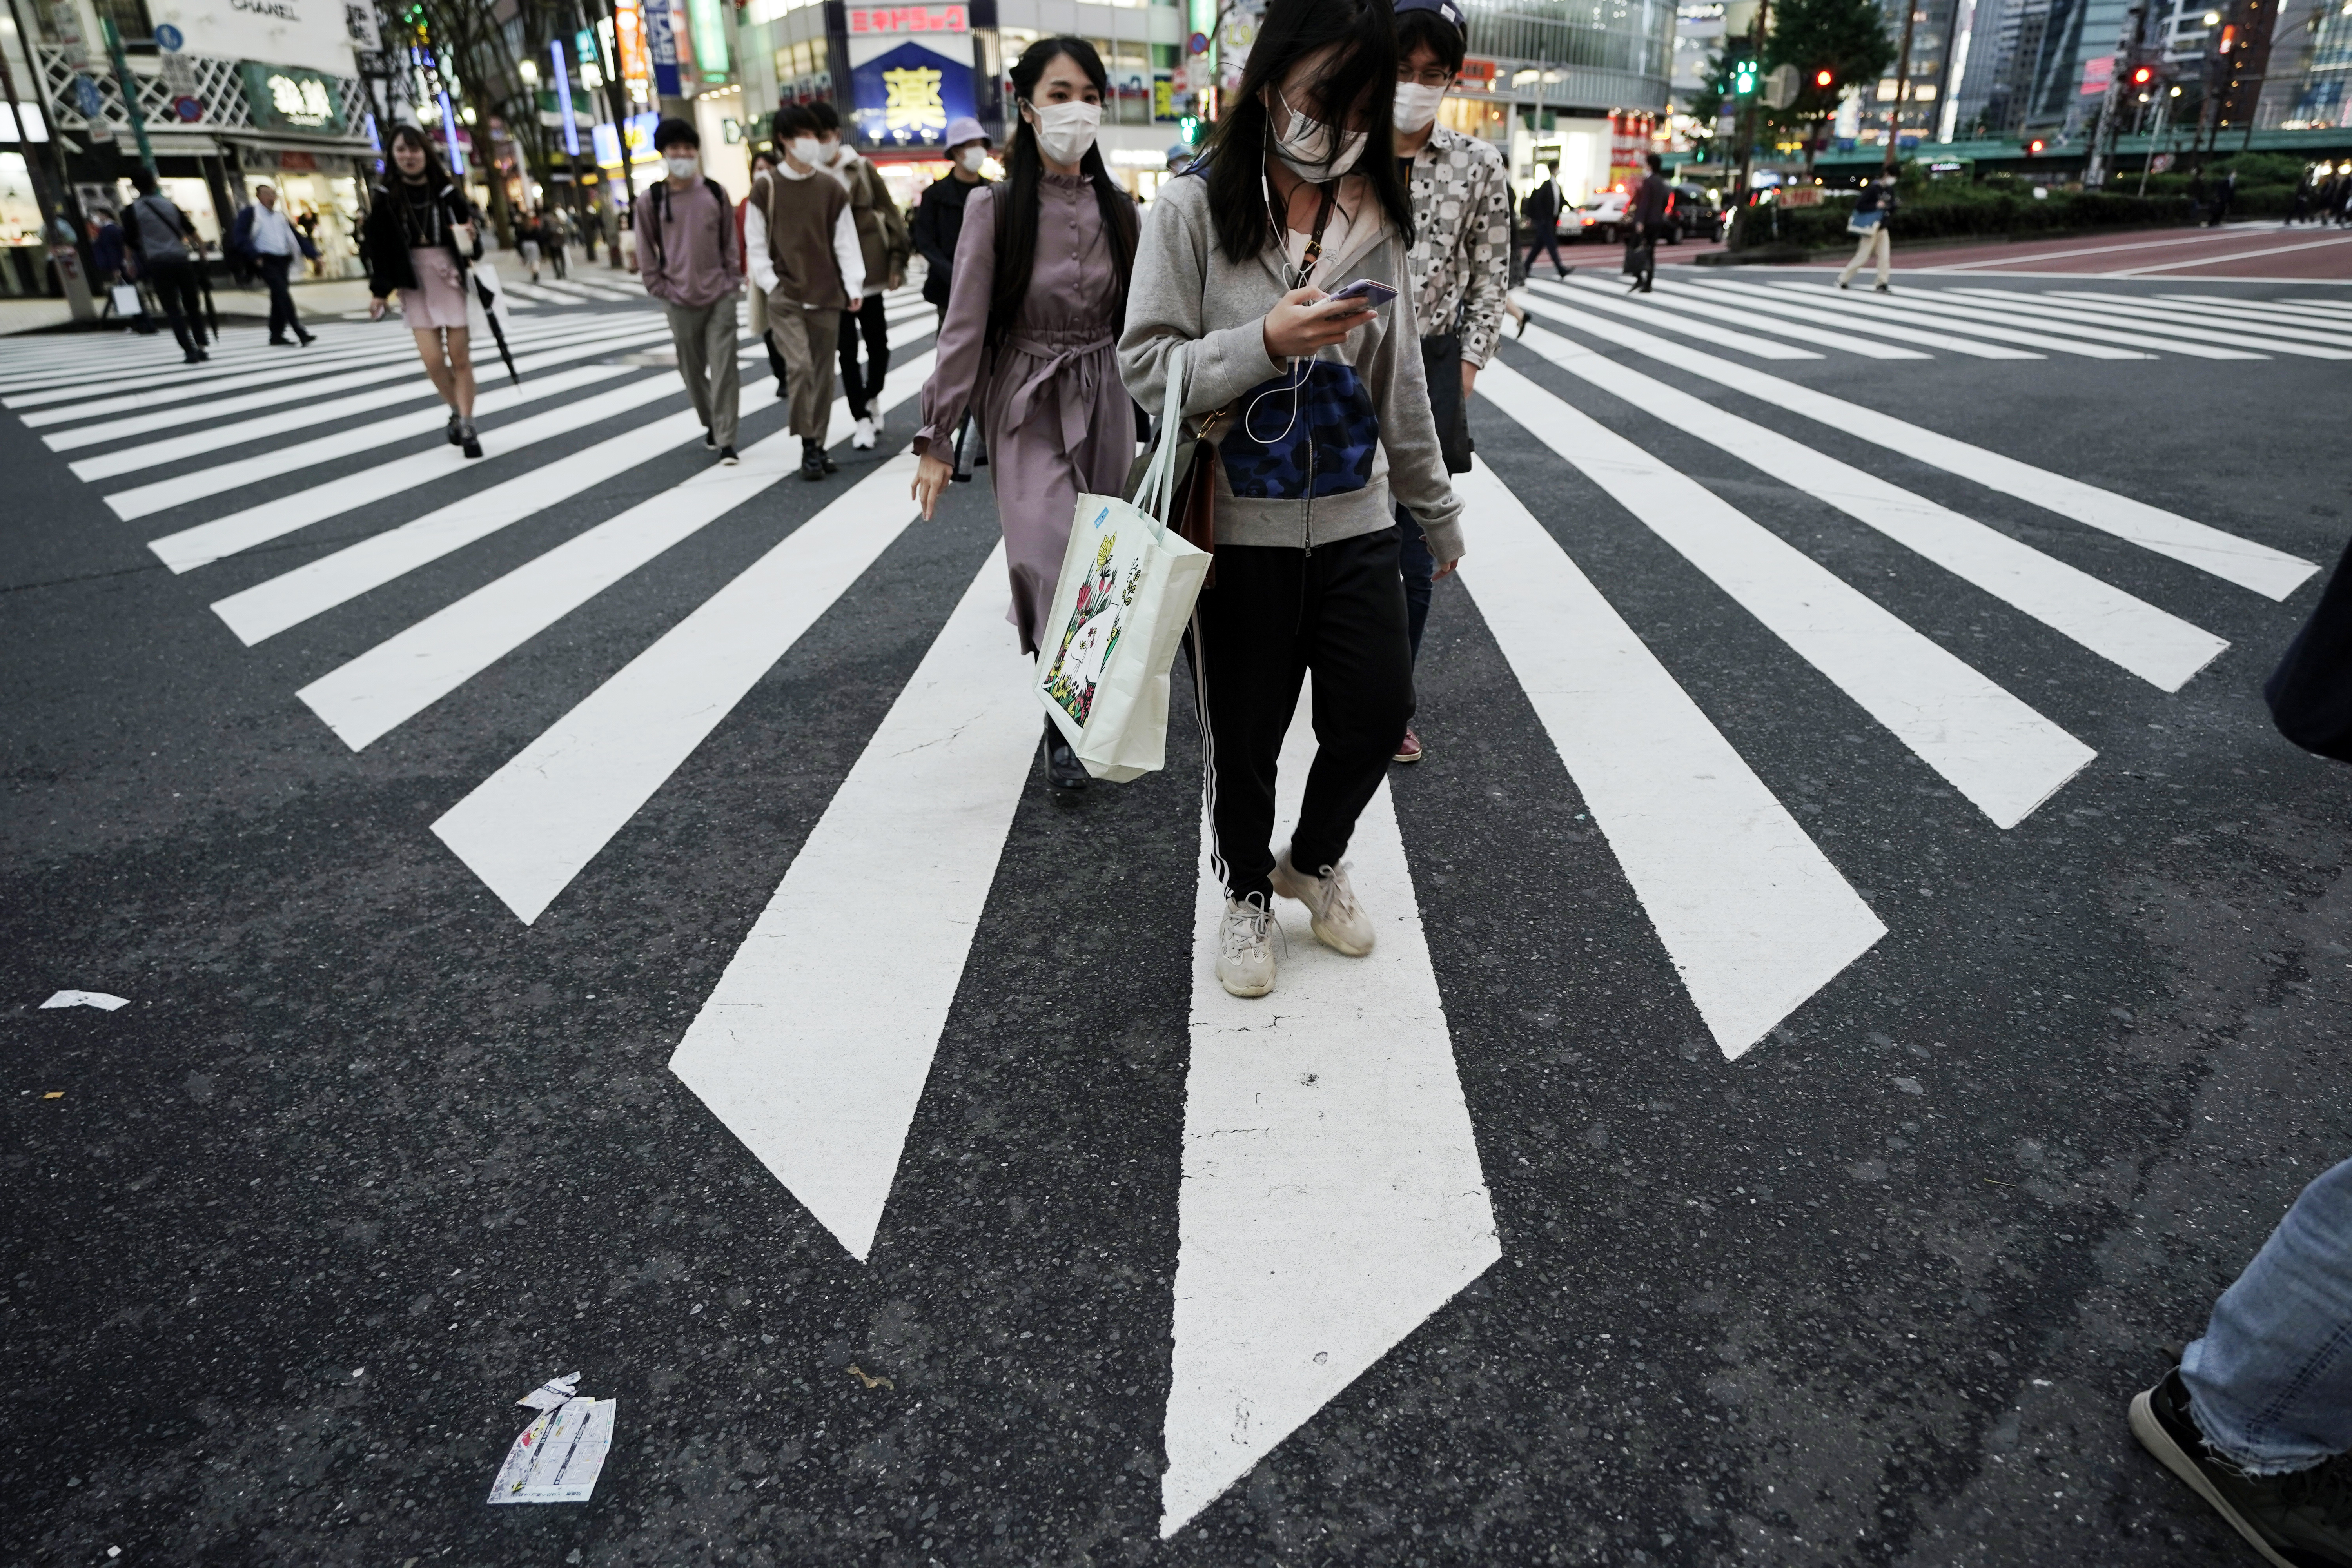 People wearing protective masks to help curb the spread of the coronavirus walk at a a pedestrian crossing Thursday, Oct. 15, 2020, in Tokyo. The Japanese capital confirmed more than 280 new coronavirus cases on Thursday.